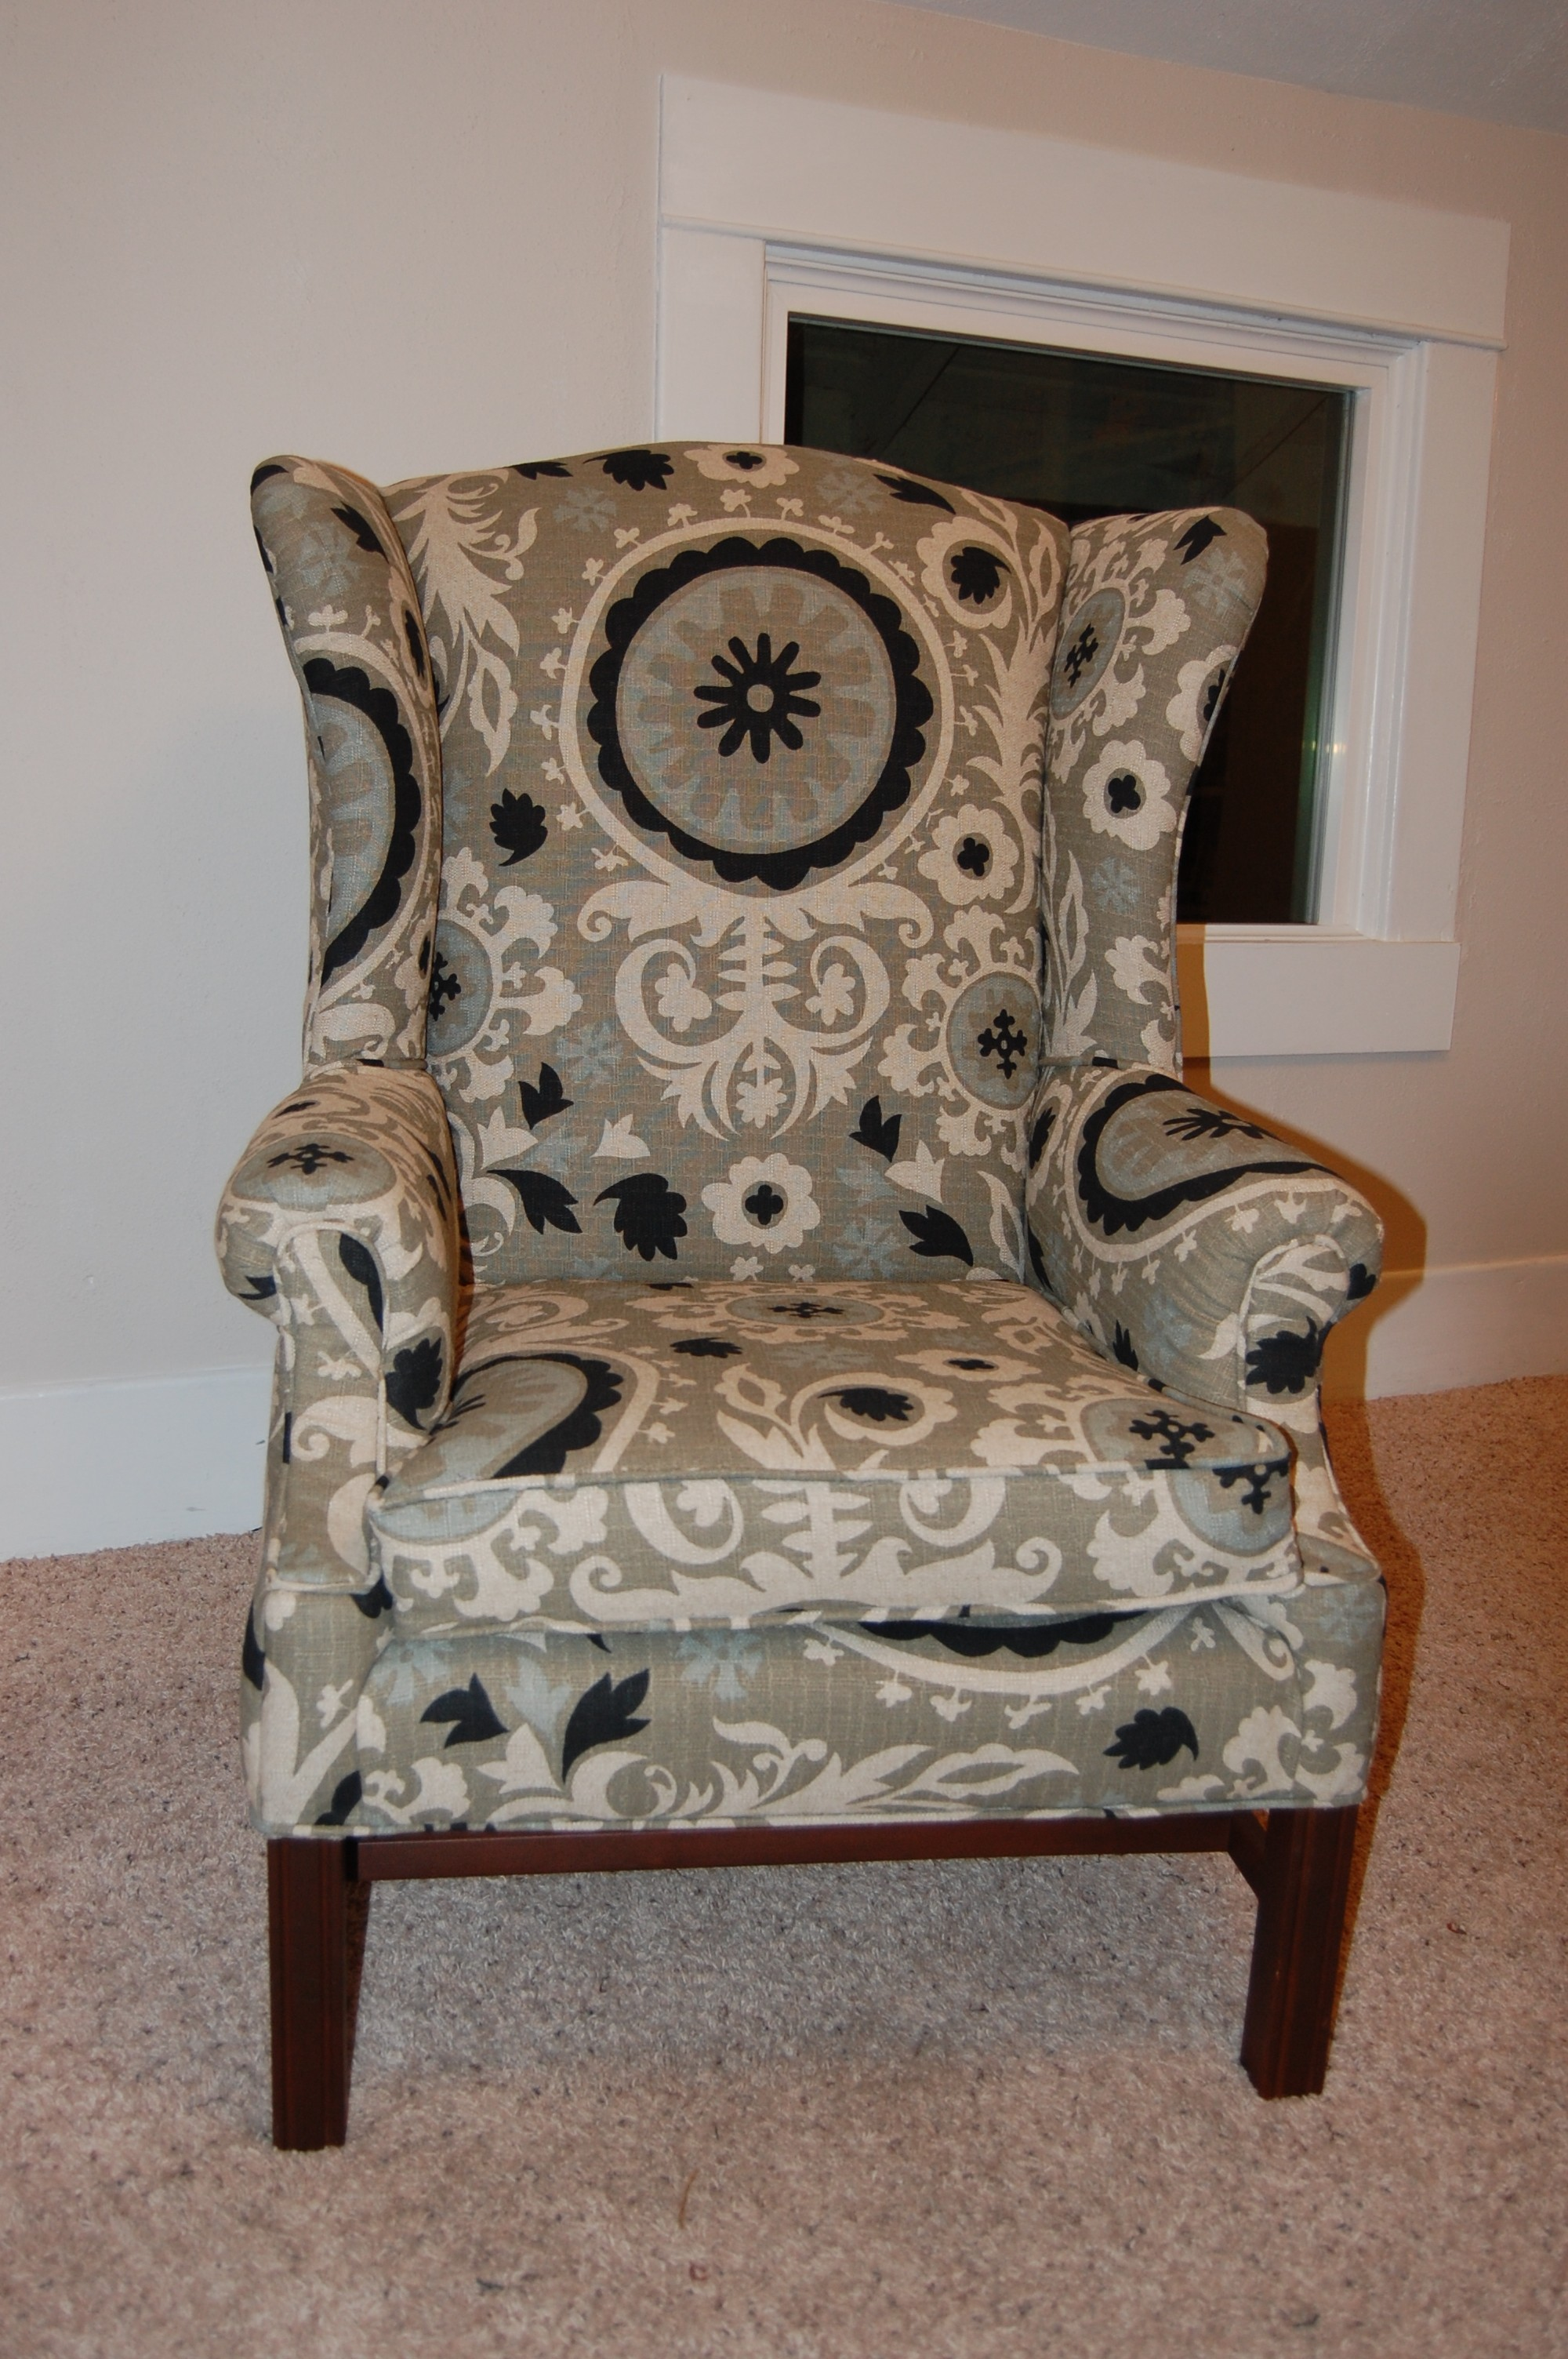 Artistic Reupholstering A Chair Ideas (View 1 of 10)